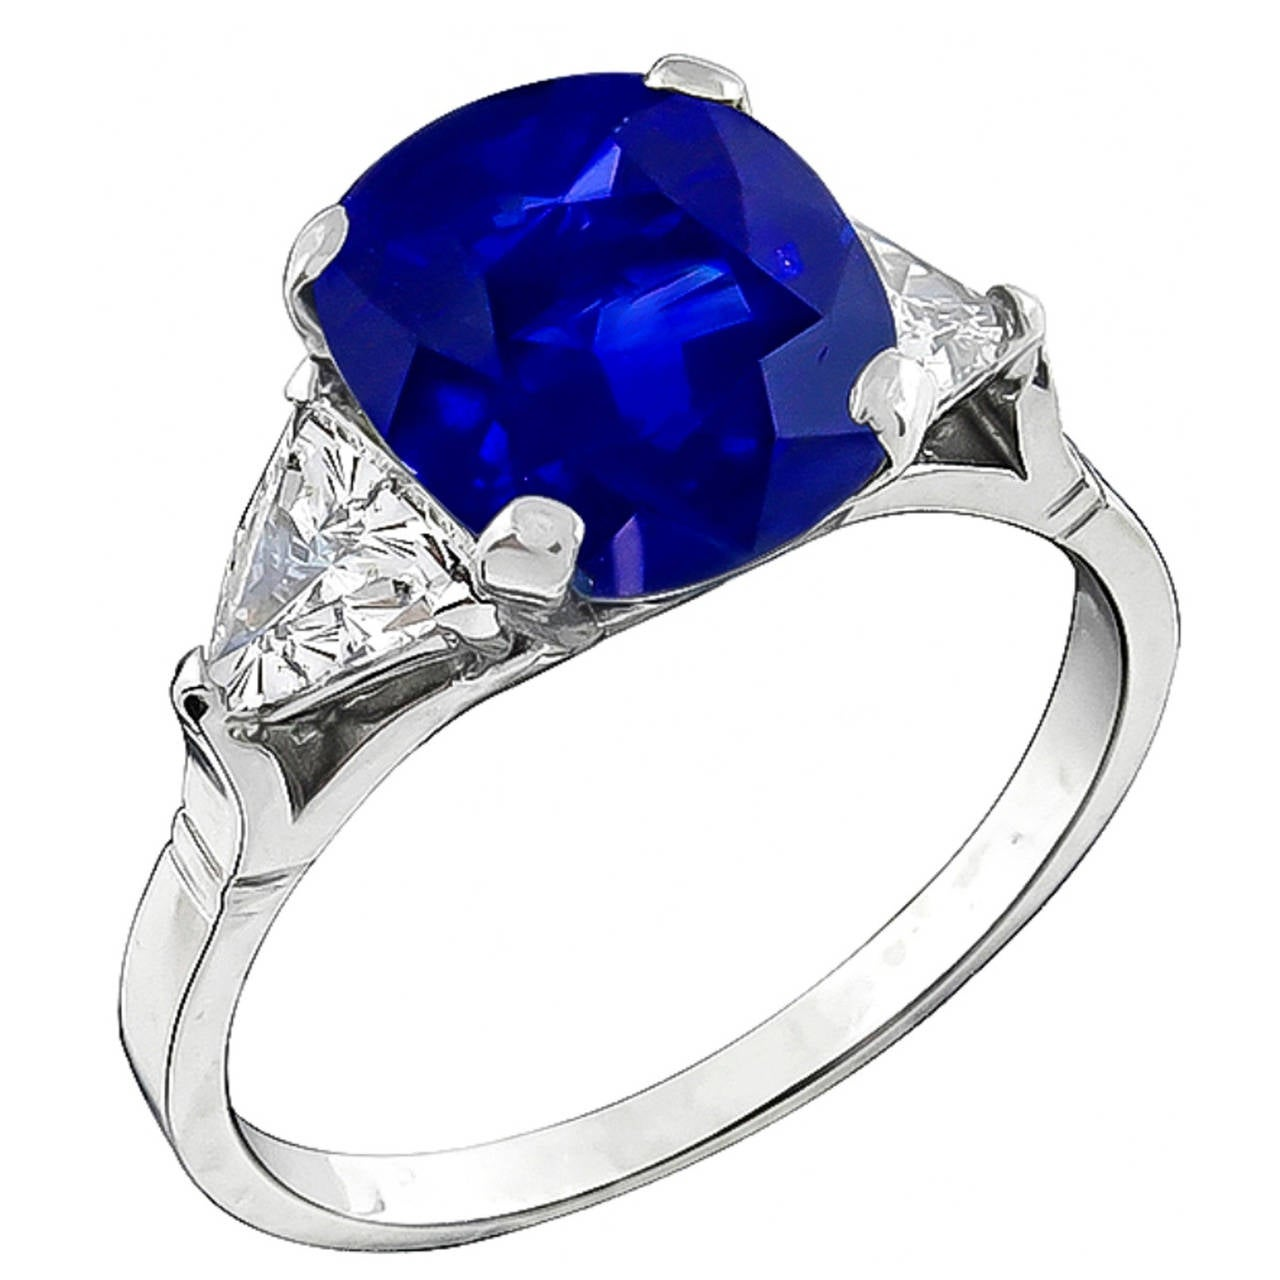 4.63 Carat Natural Cushion Cut Sapphire Diamond Platinum Ring